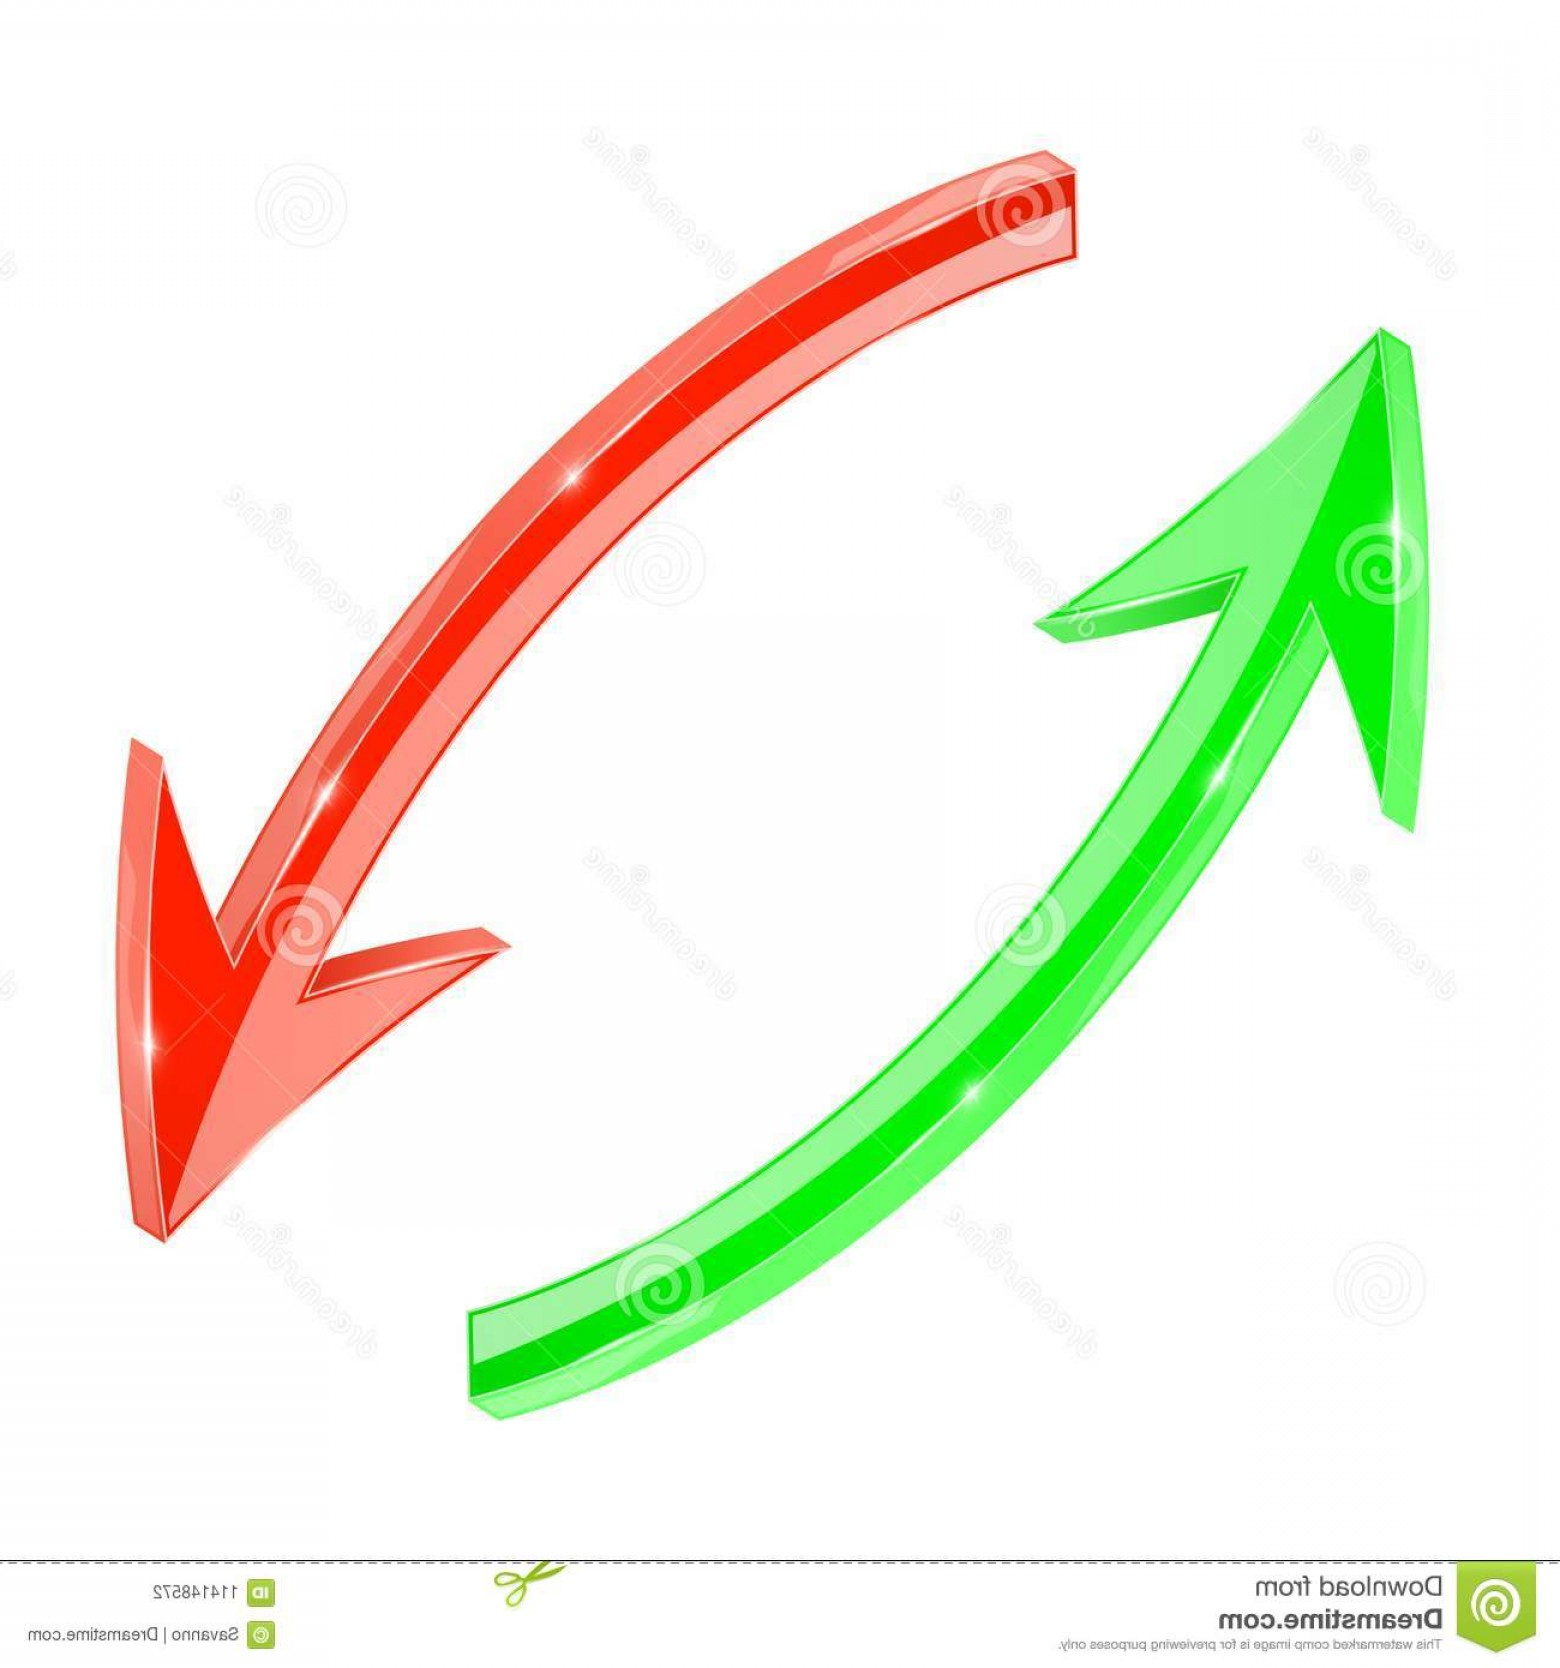 Recycle Icon Vector Red: Arrows Red Green D Arrows Circular Motion Refresh Recycle Icons Arrows Red Green D Arrows Circular Motion Refresh Image